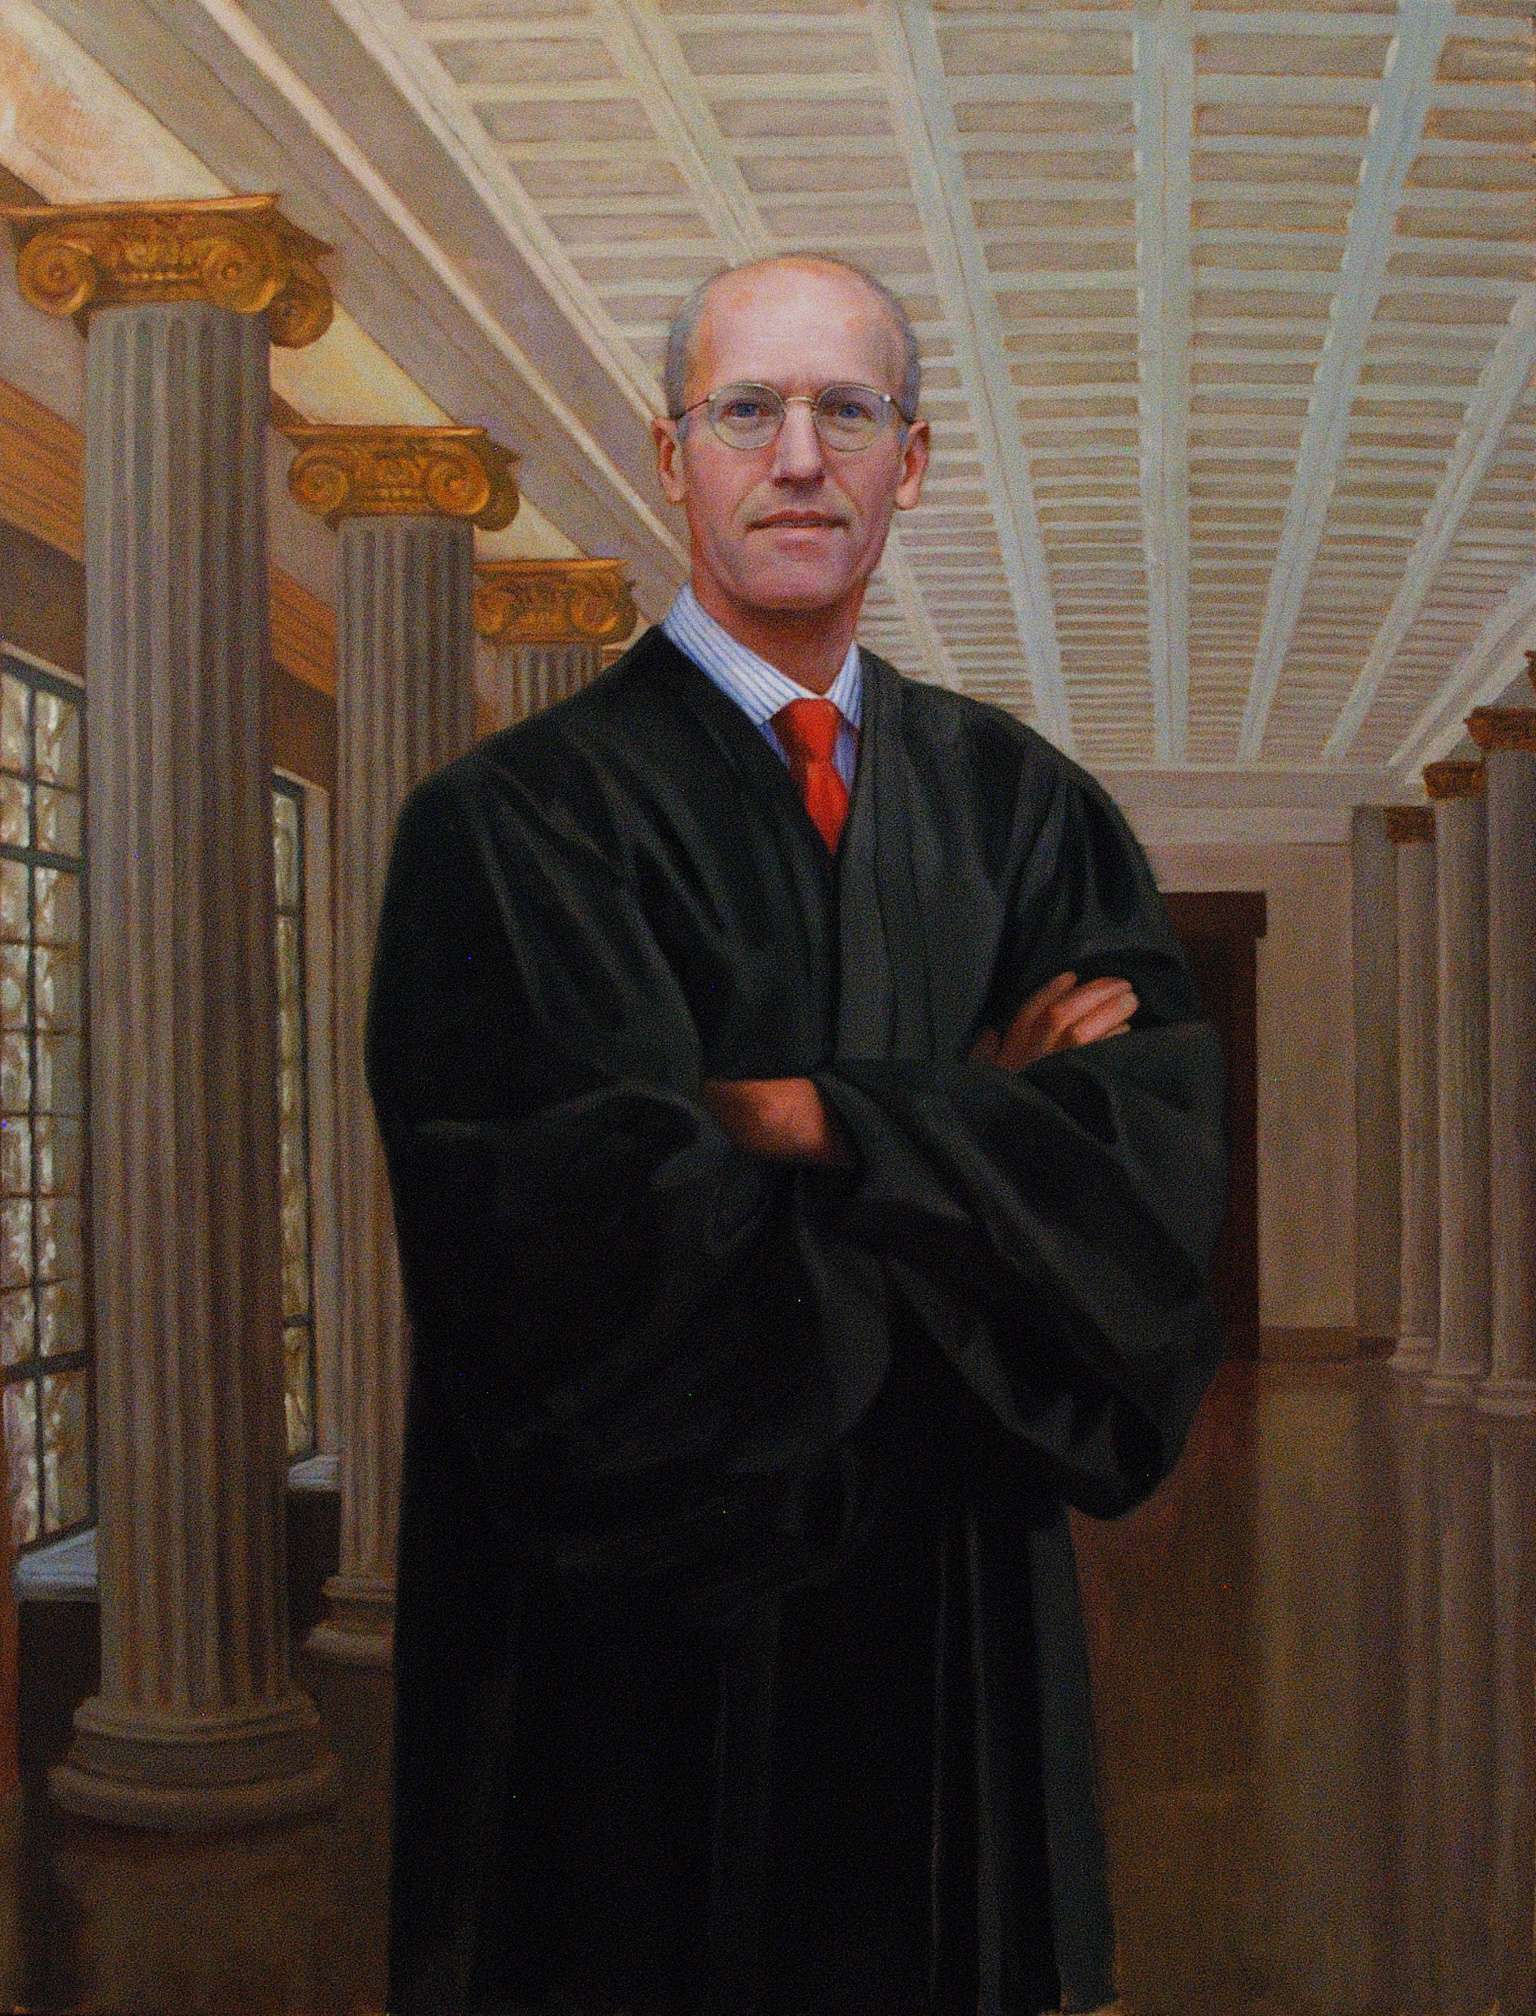 1-Mark-Kravitz-US-District-Judge-oil_canvas-38x54-96x152cm.jpg